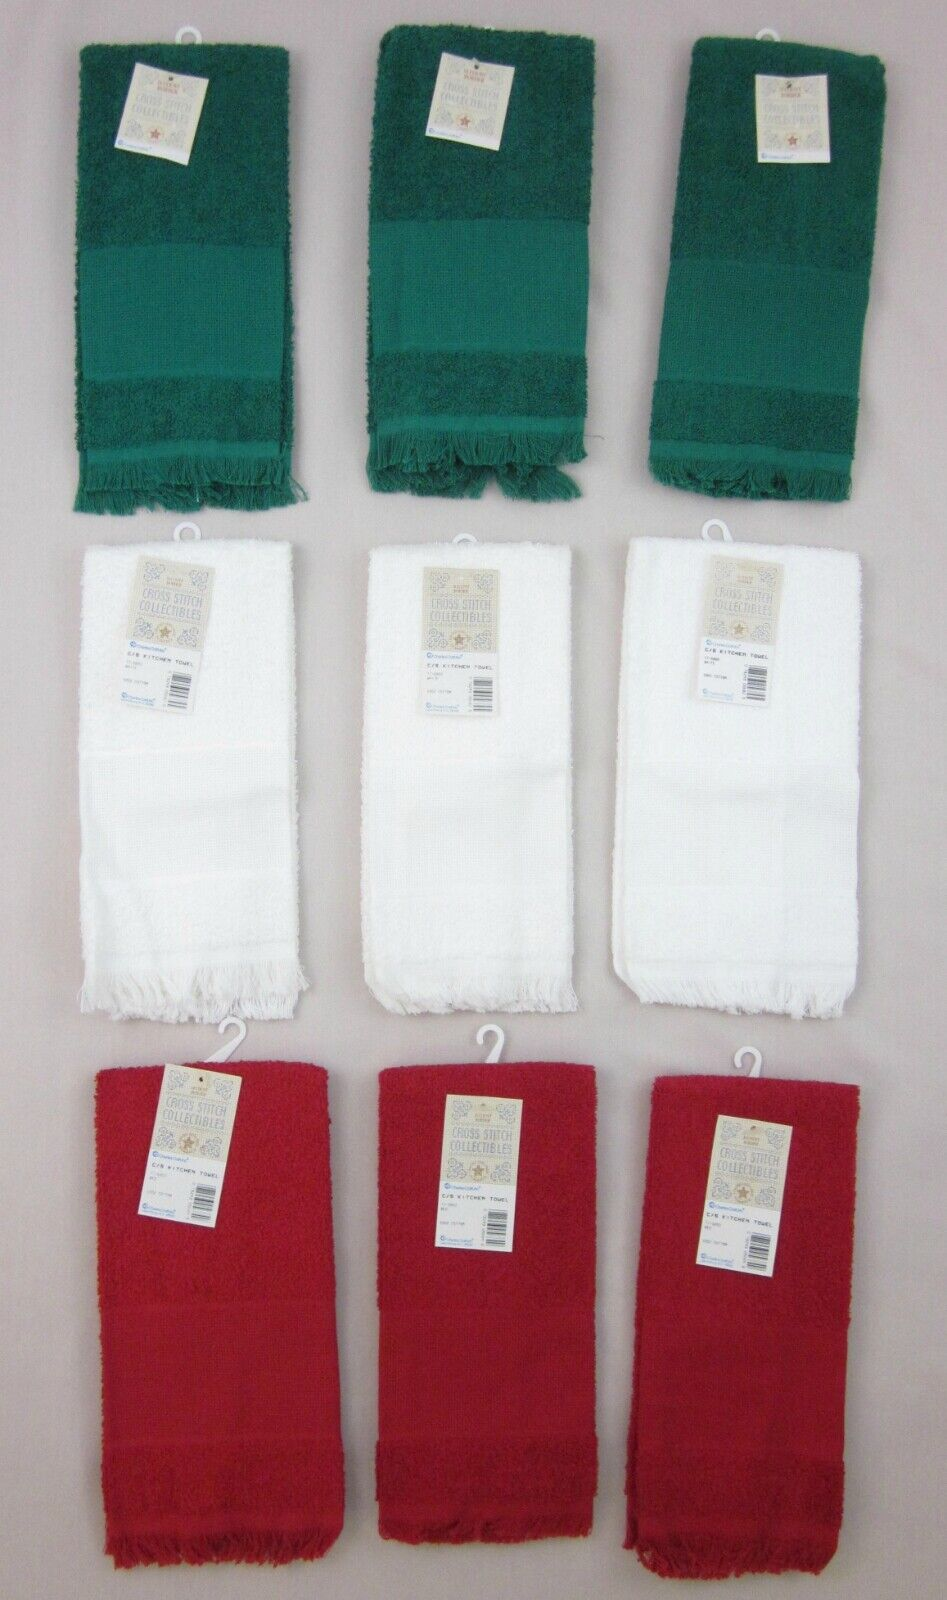 NEW! 9 Charles Craft Cross Stitch 14 Count Kitchen Towels 3